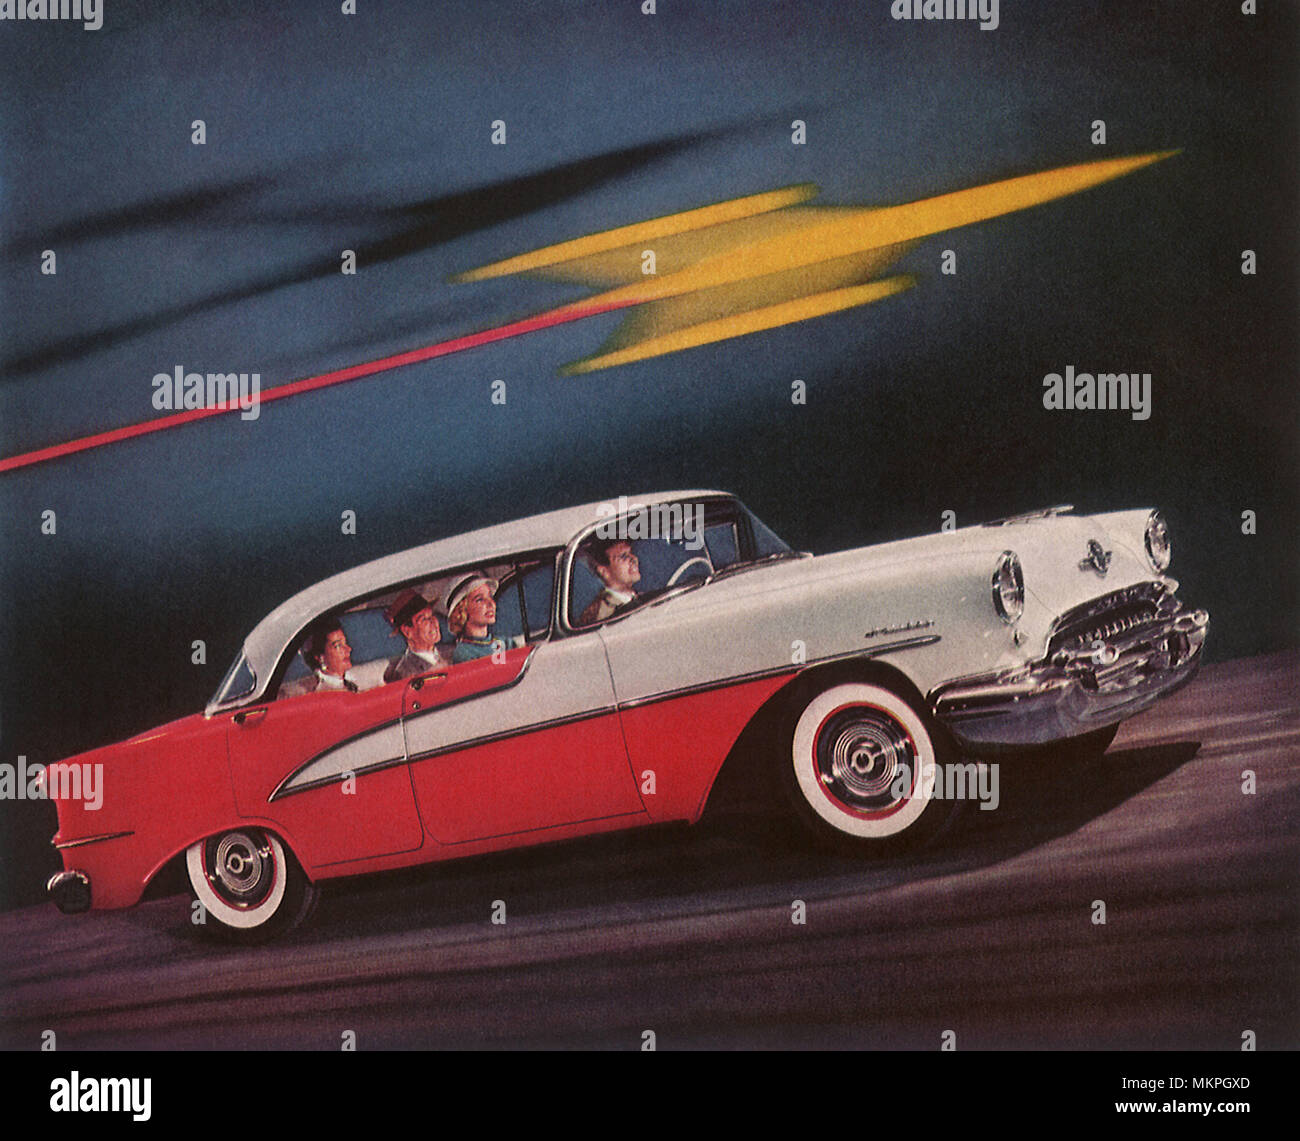 1955 Oldsmobile Stock Photos & 1955 Oldsmobile Stock Images